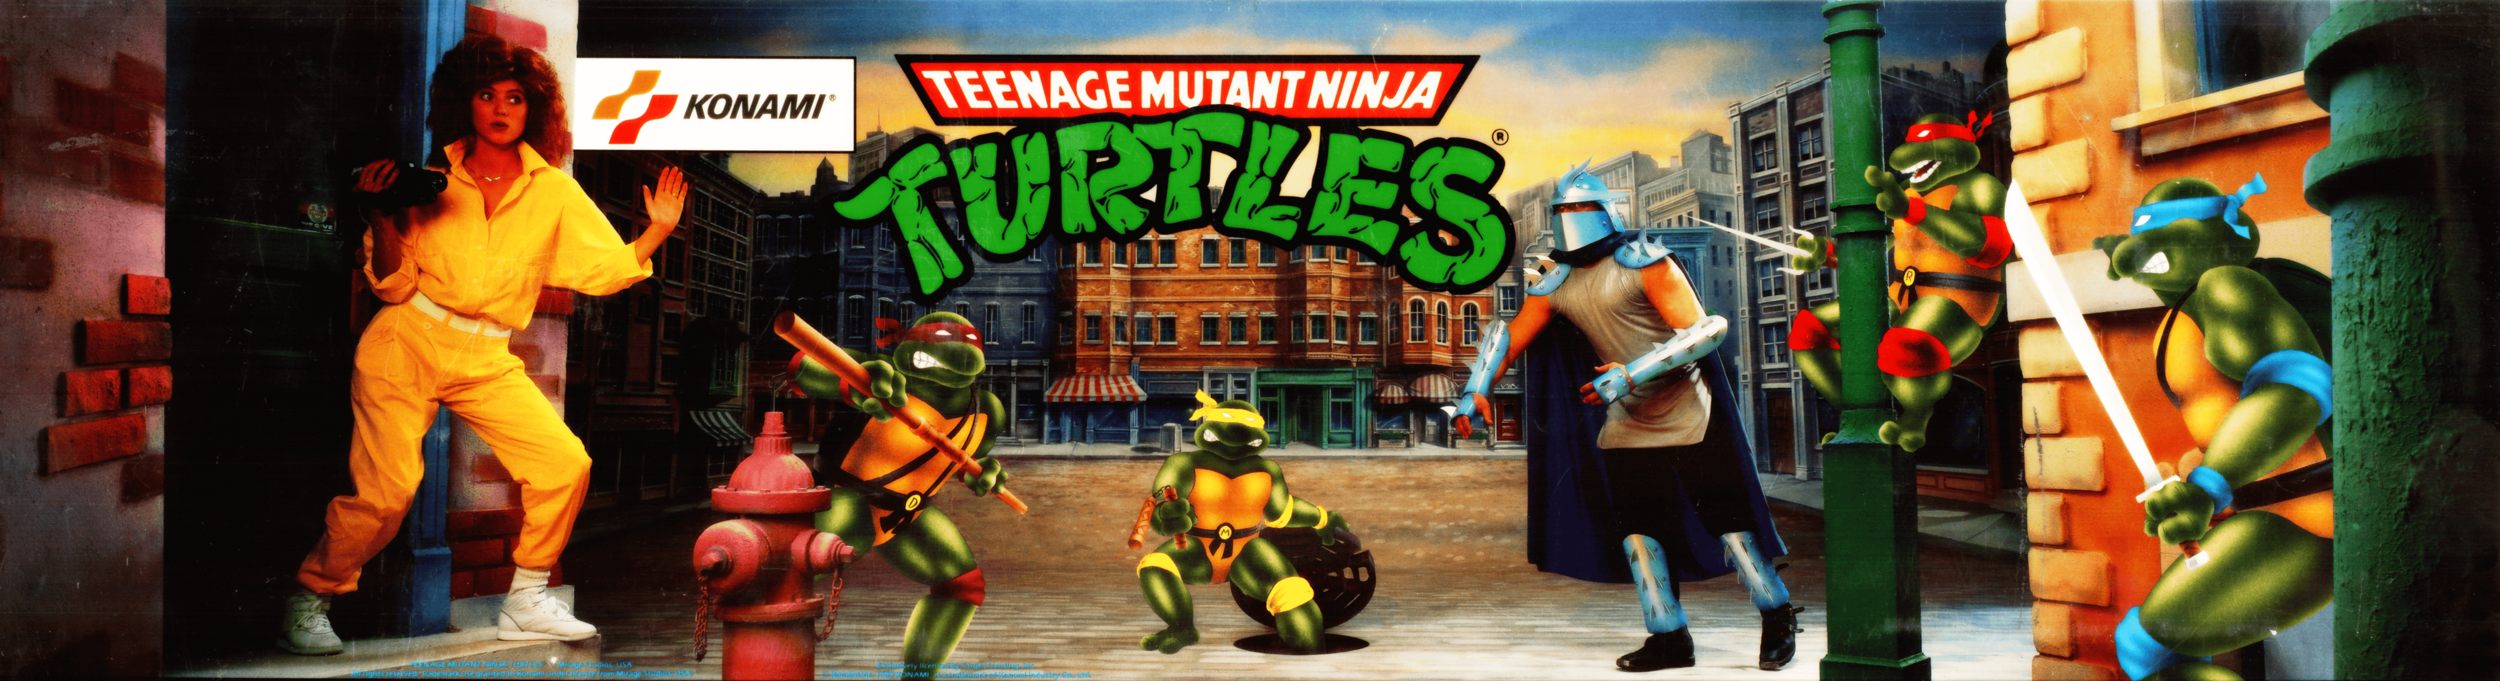 Teenage_Mutant_Ninja_Turtles_-_ARC_-_USA_-_Marquee.png